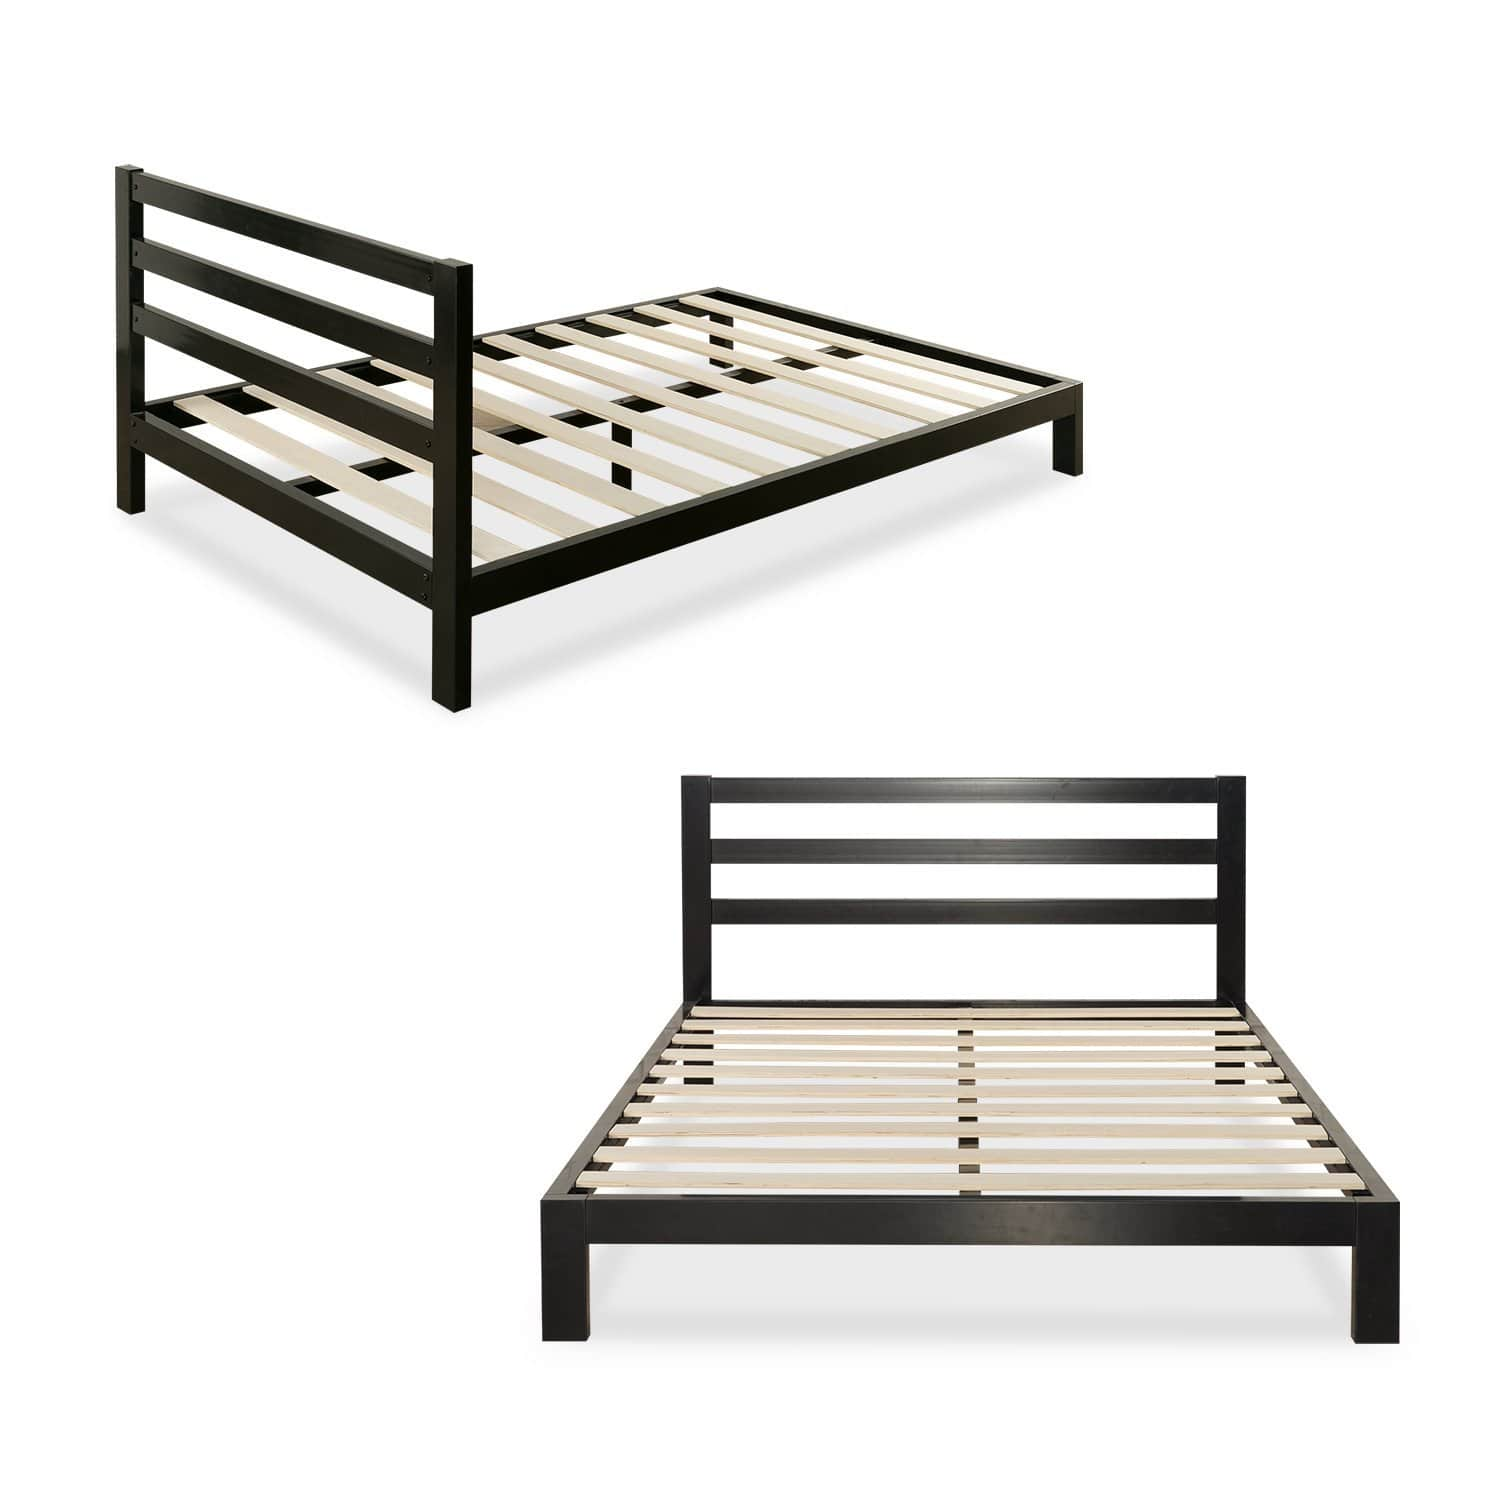 Fabulous Zinus Platform H Metal Bed Frame w Headboard Queen Slickdeals net